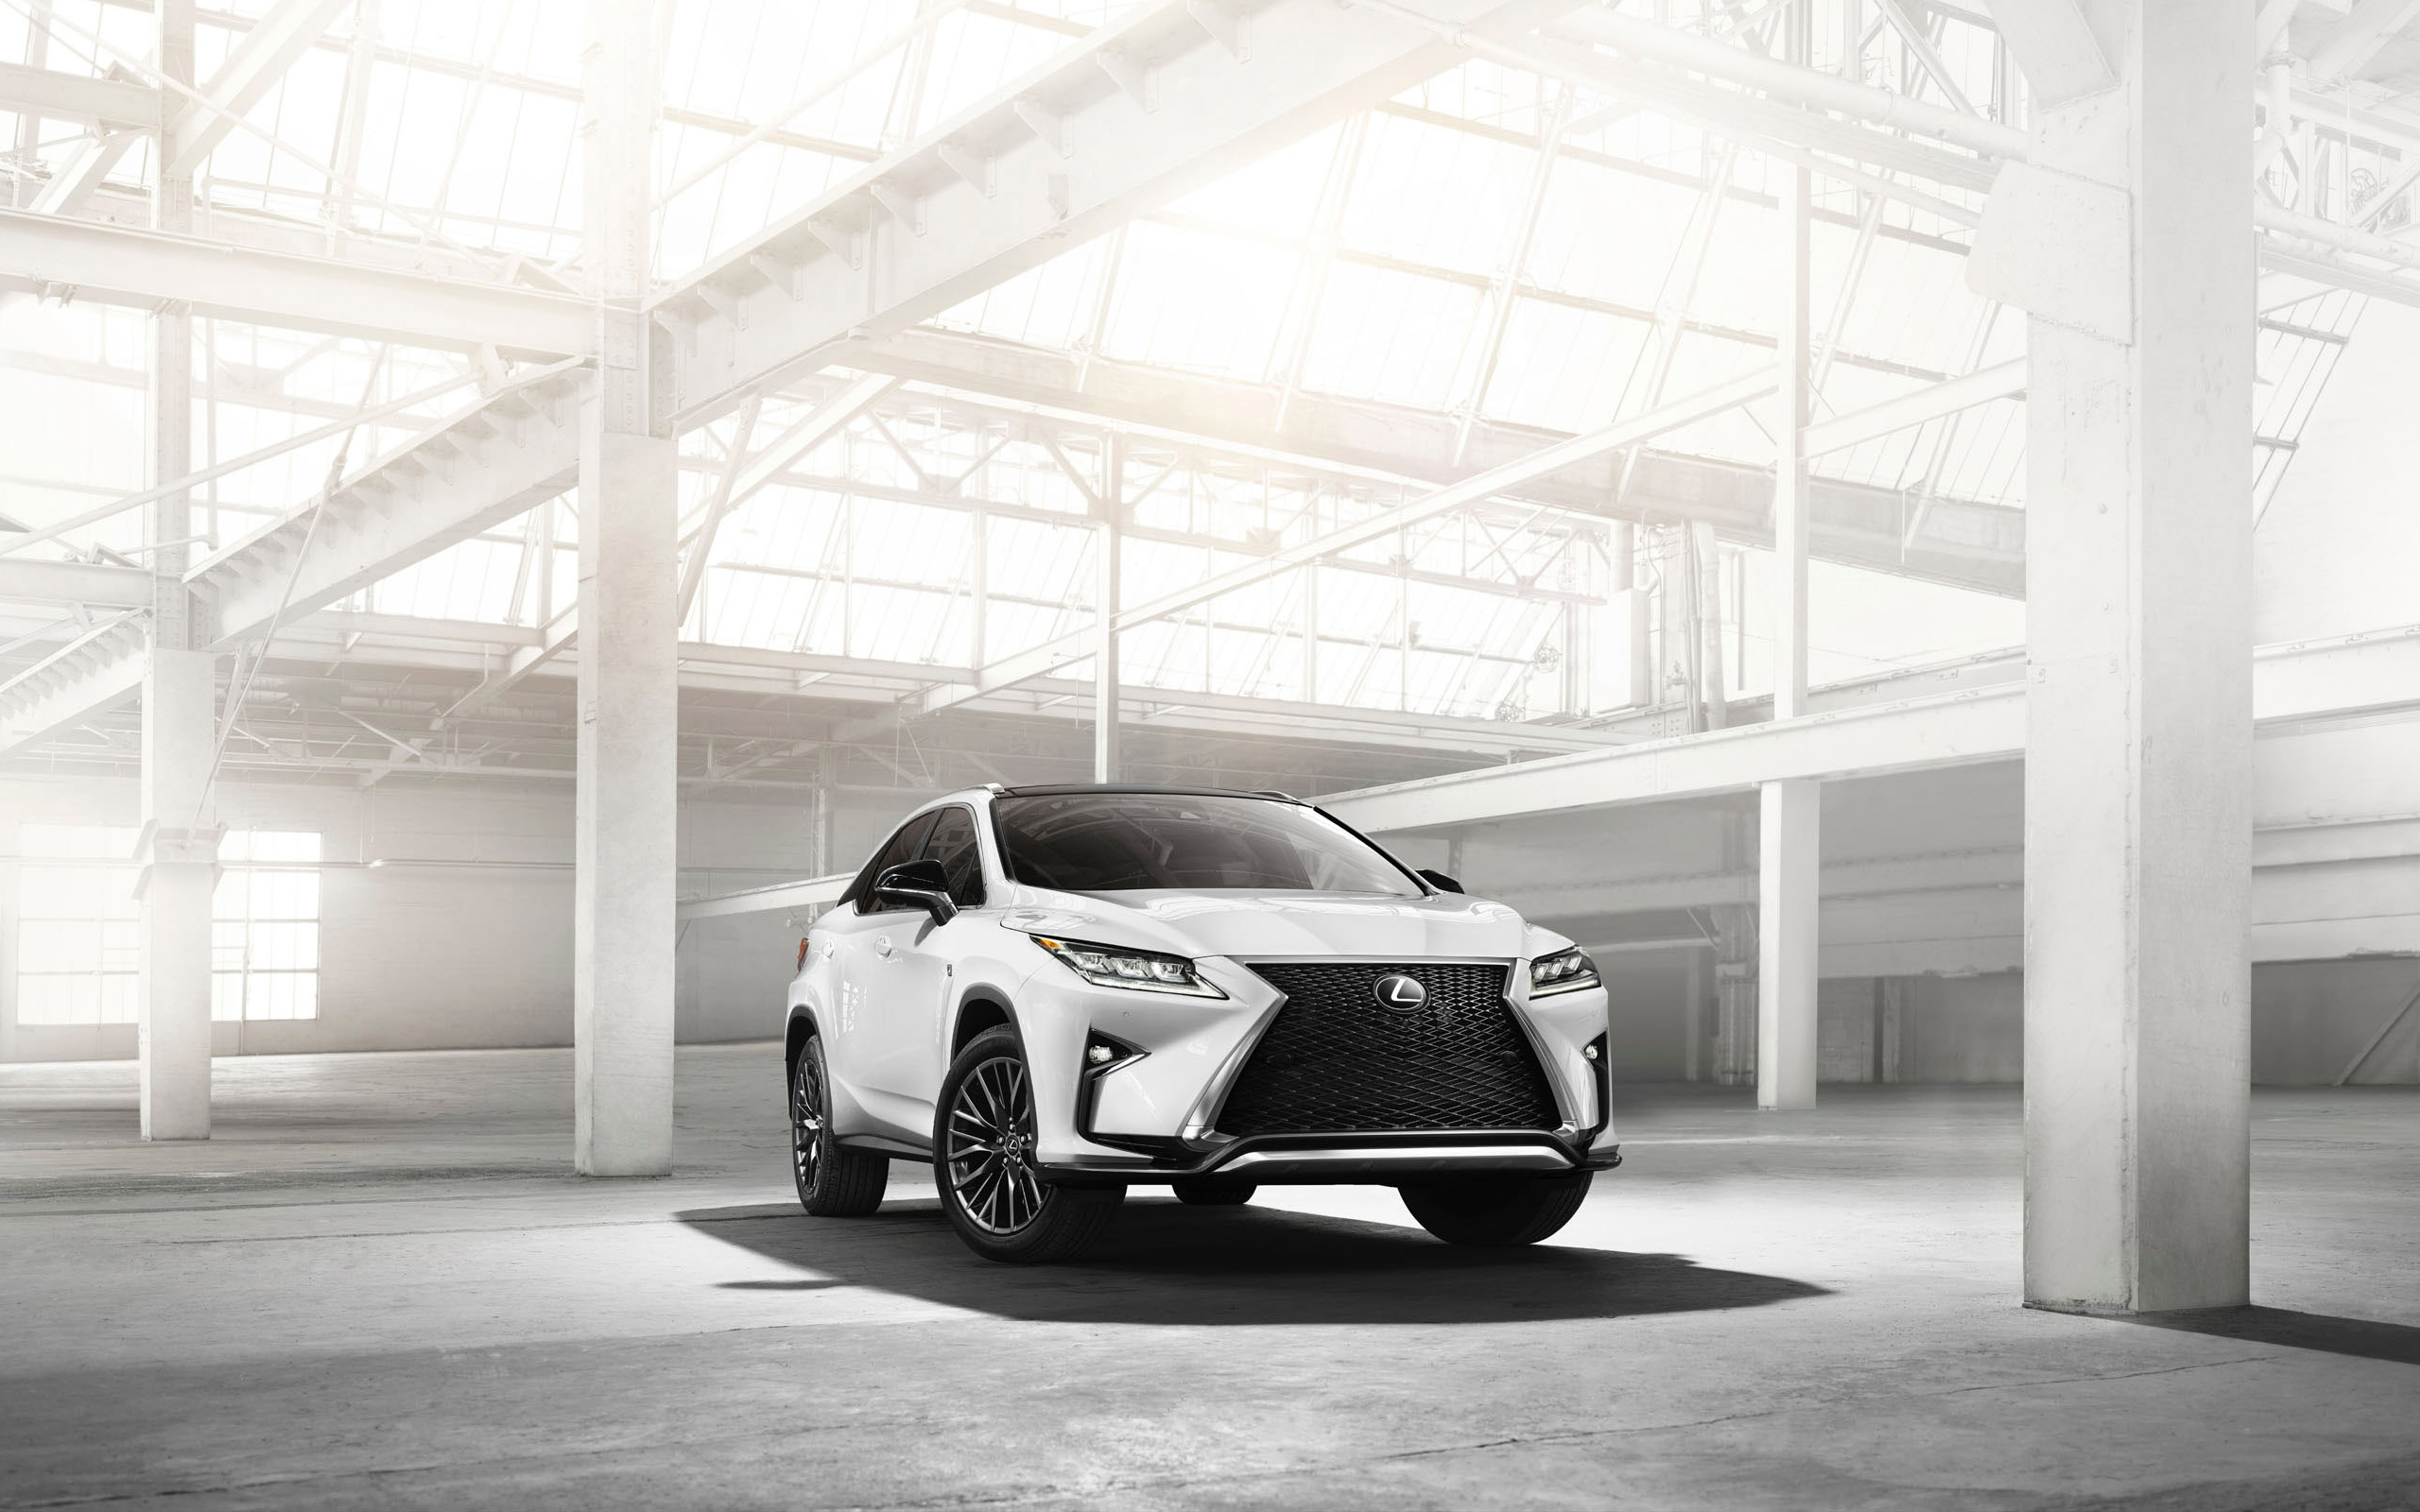 lexus reviews car review new quarter luxurious comfort styling rx front bestride edgy